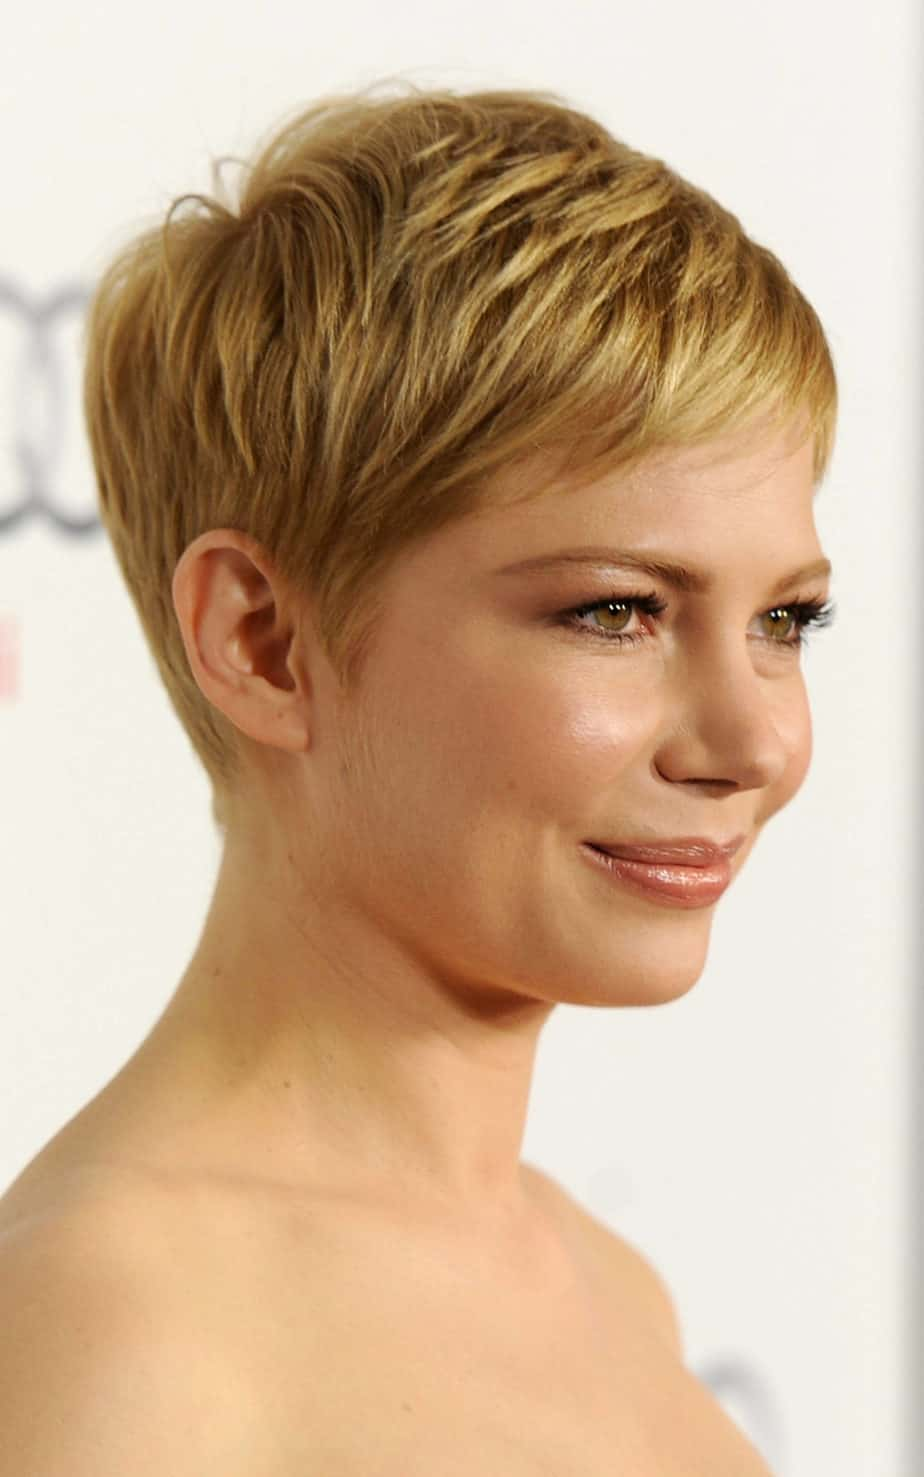 Best Pixie Cuts 2021 Pixie Cuts 2021: Best Tendencies and Styles from Classic to Edgy